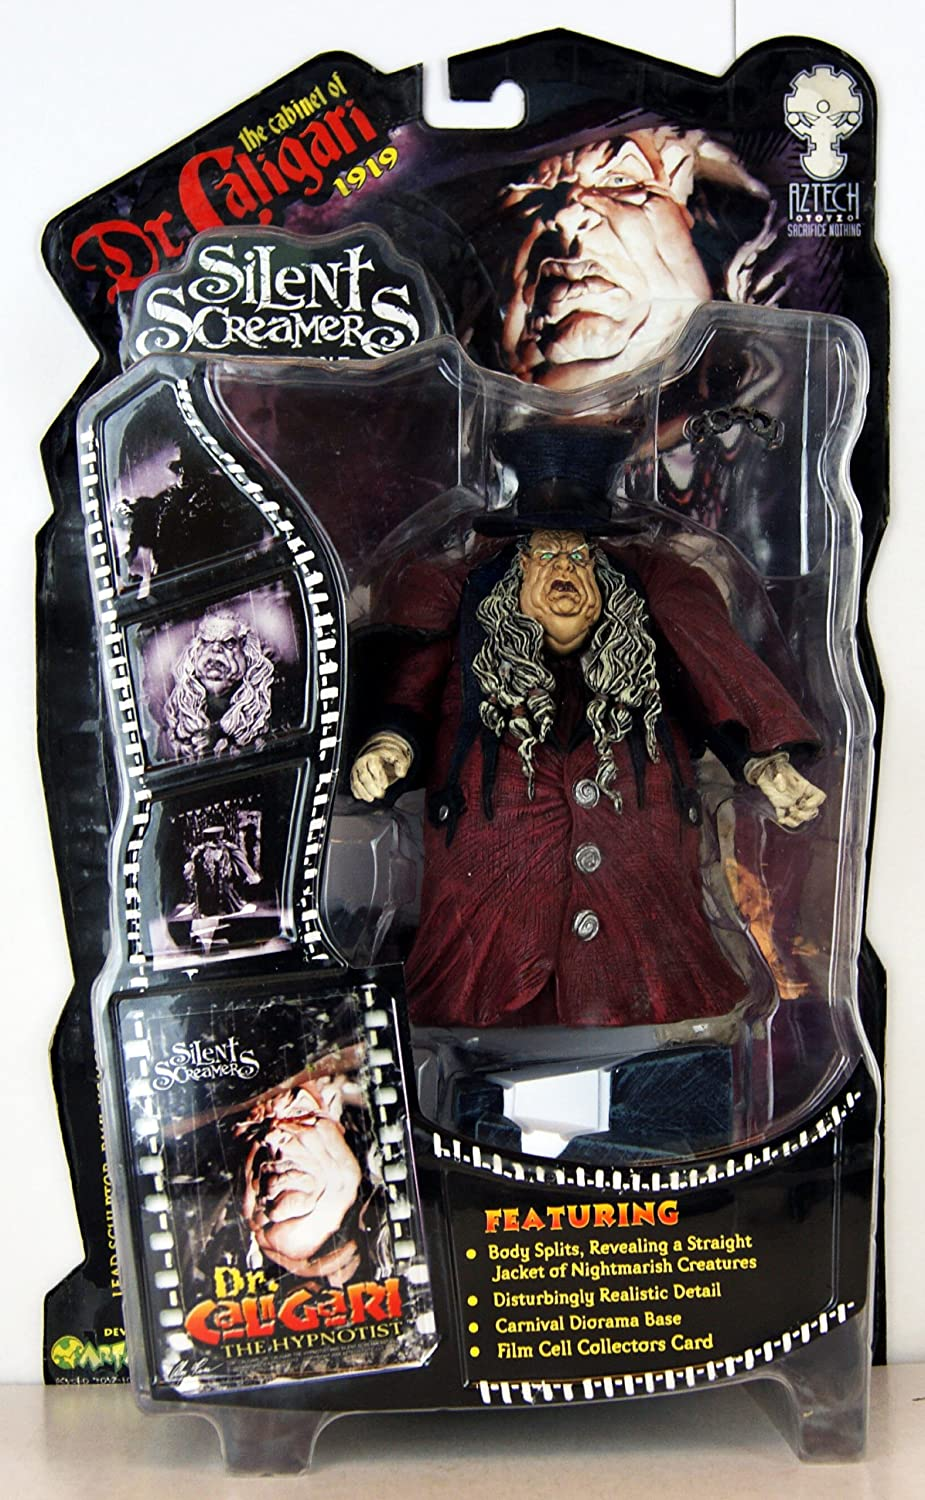 Silent Screamers  Series 1  The Cabinet of Dr.Caligari 1919  Dr.Caligari the Hypnotist  99004